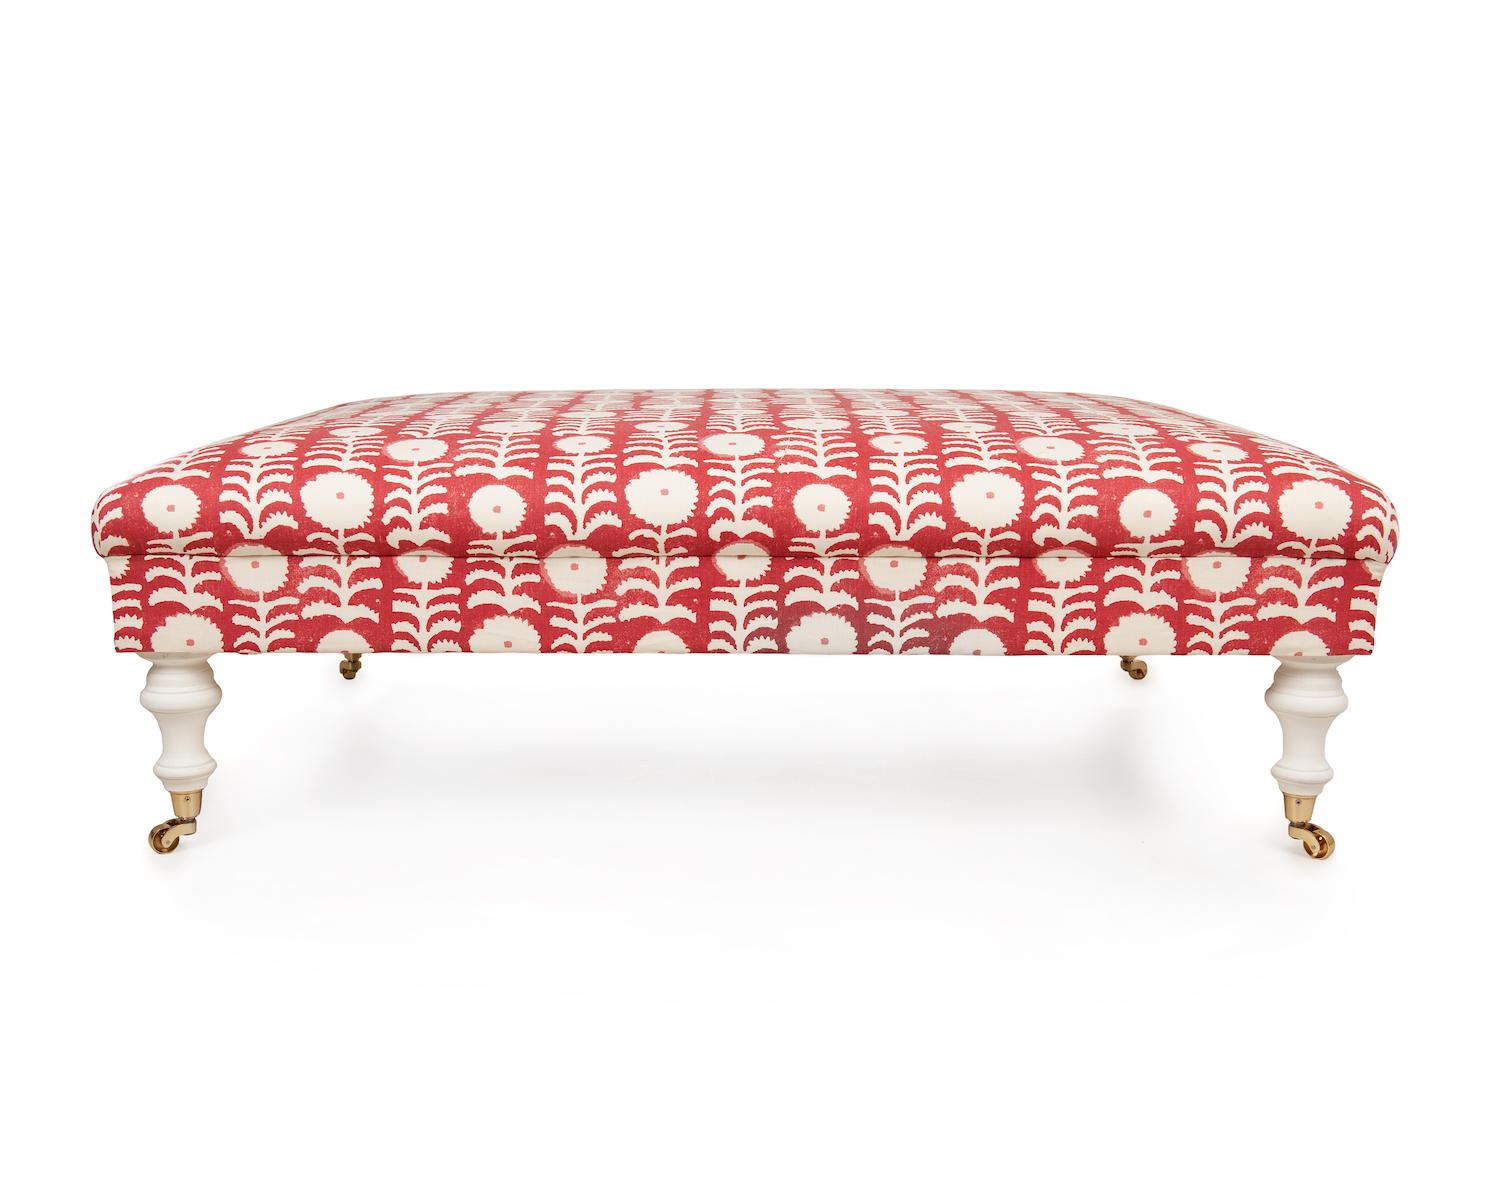 Roll Top Footstool with Simple Gimp Pin Embellishment,  White Painted Legs & Solid Brass Castors